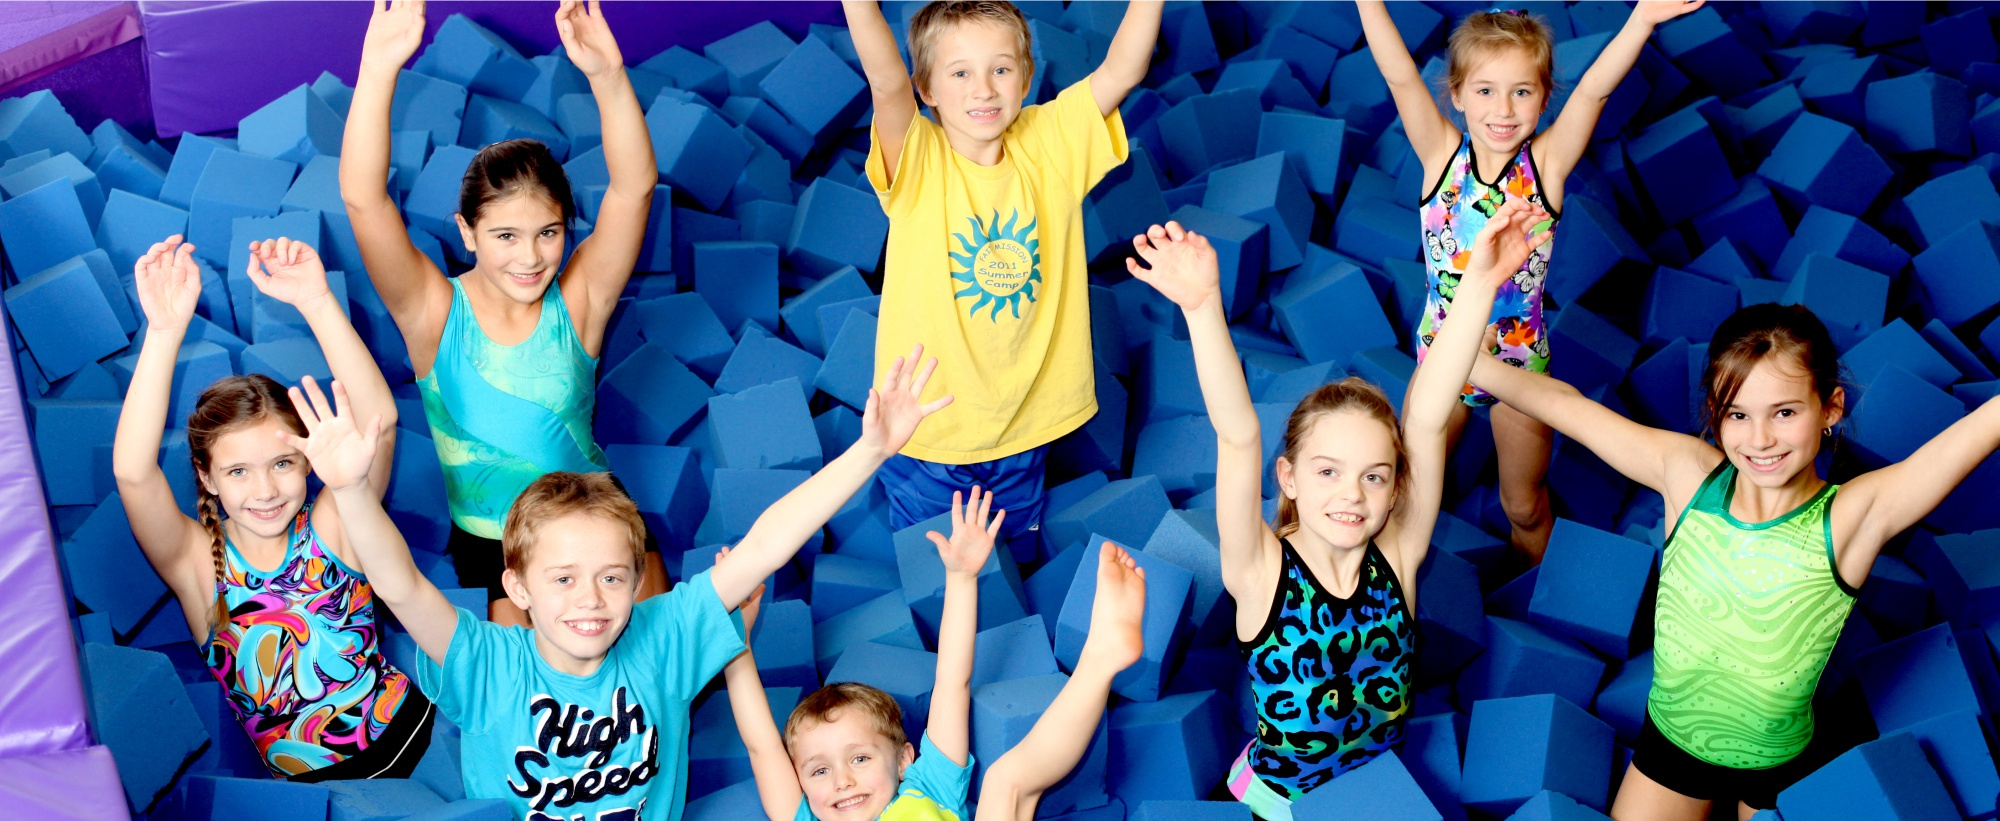 kelowna gymnastics drop-in 5 - 13 years